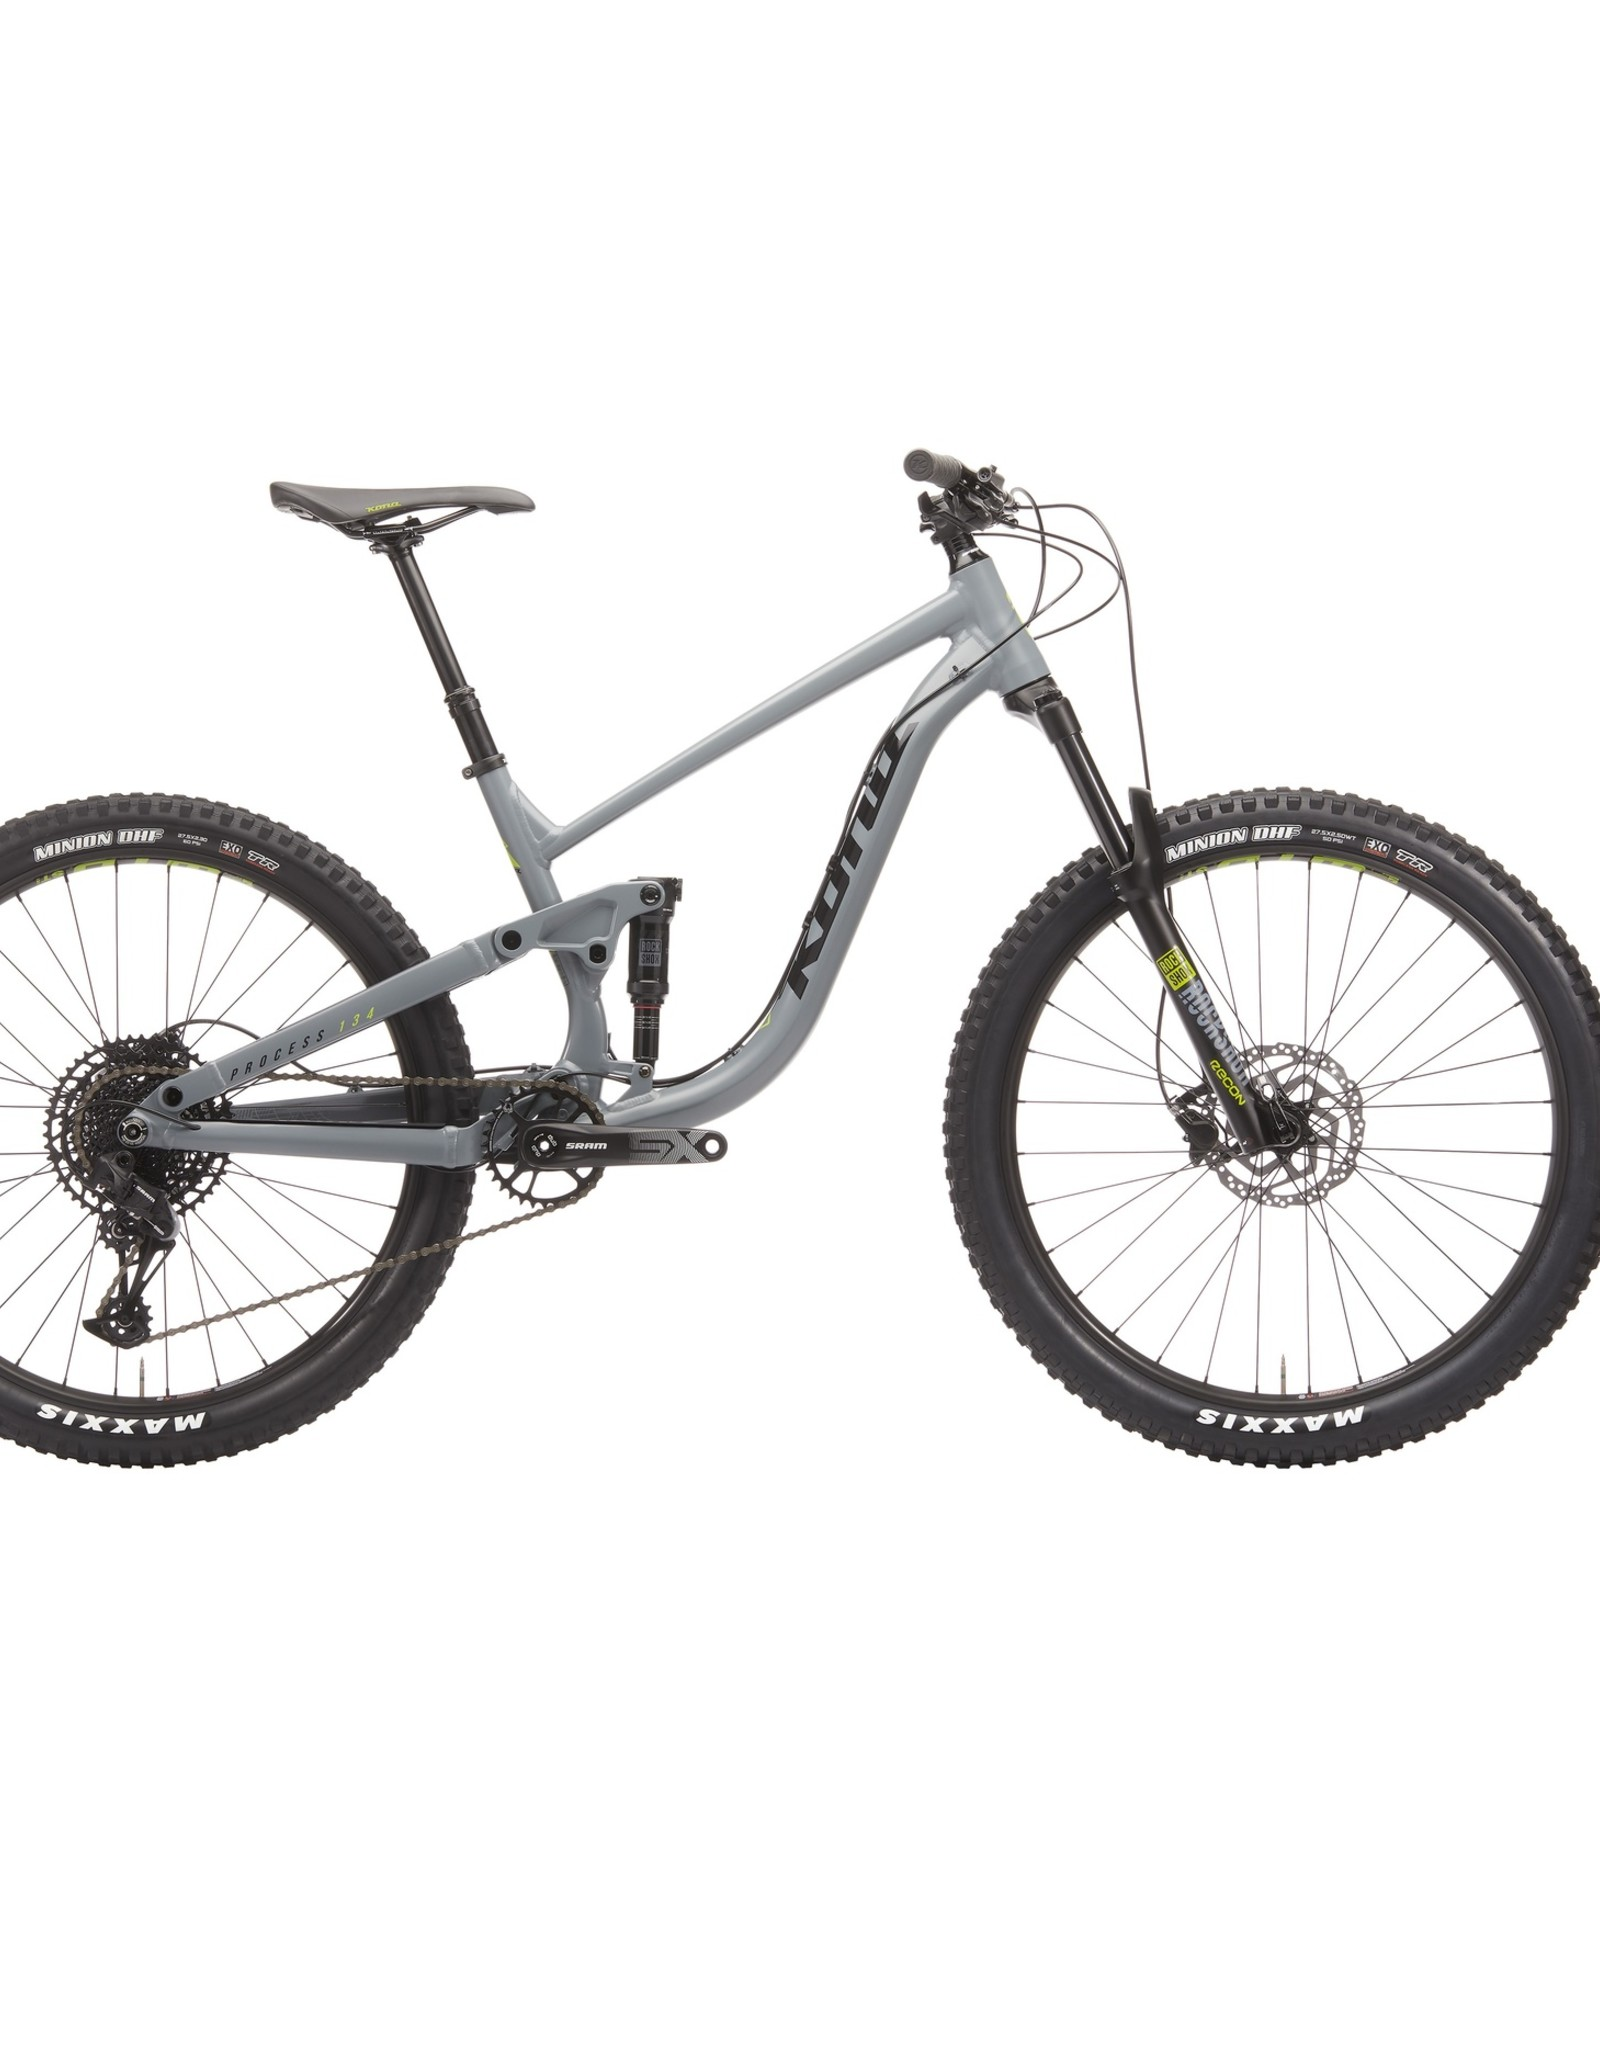 KONA Kona Process 134 Bicycle 27.5 Battleship Gray XL